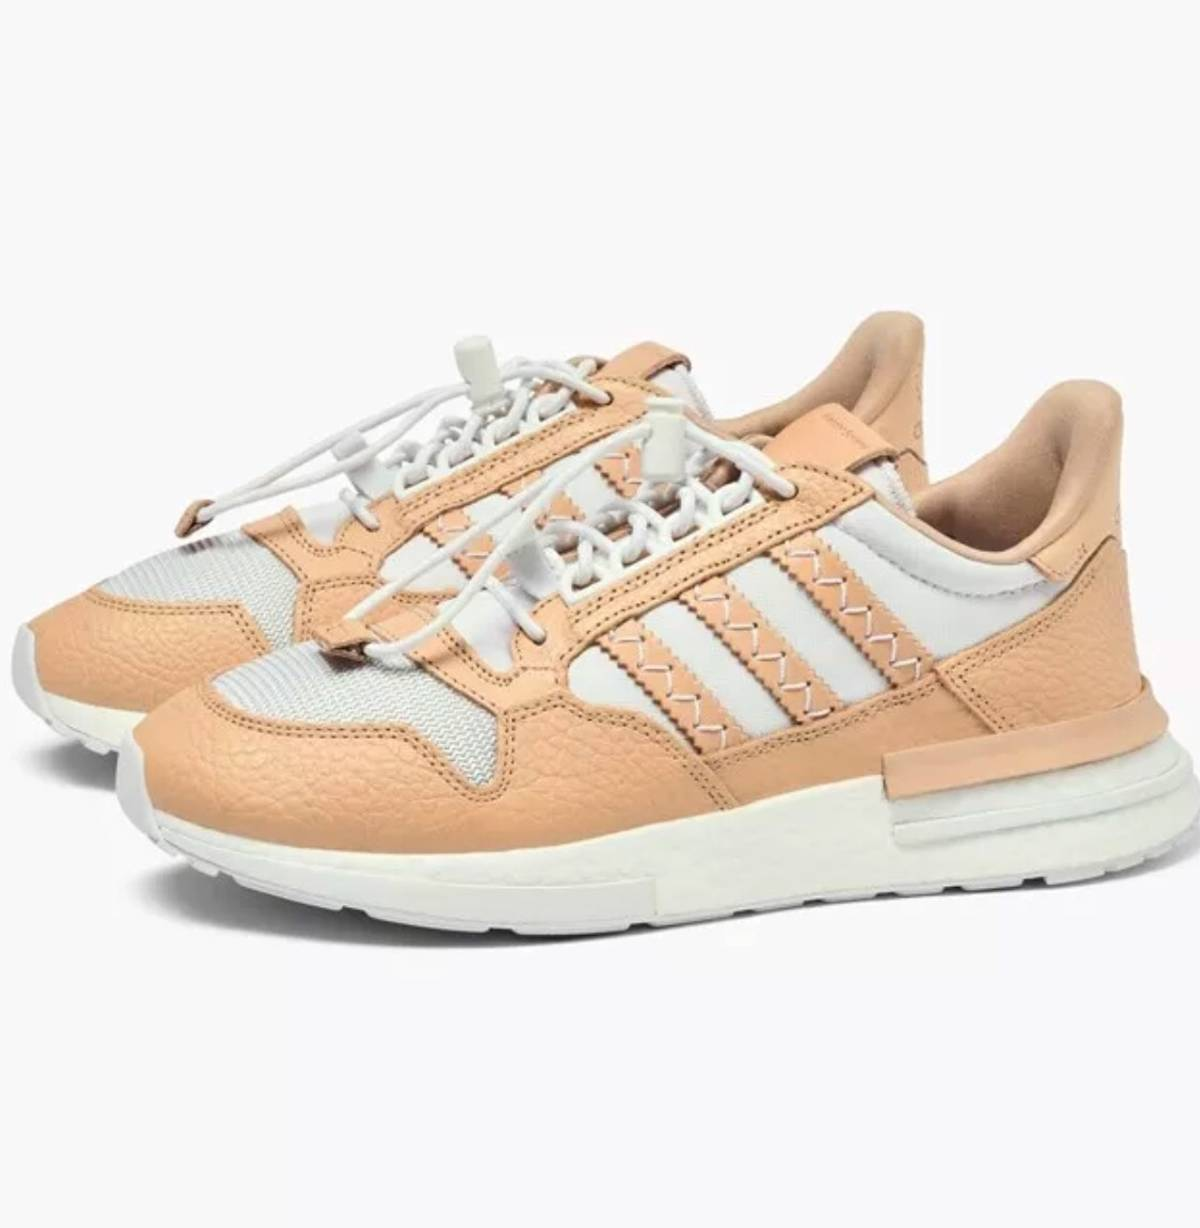 82f16e4d8c1 Adidas Adidas ZX500 RM x Hender Scheme F36047 Men Size US 13 NEW 100%  Authentic Size 13 - Low-Top Sneakers for Sale - Grailed